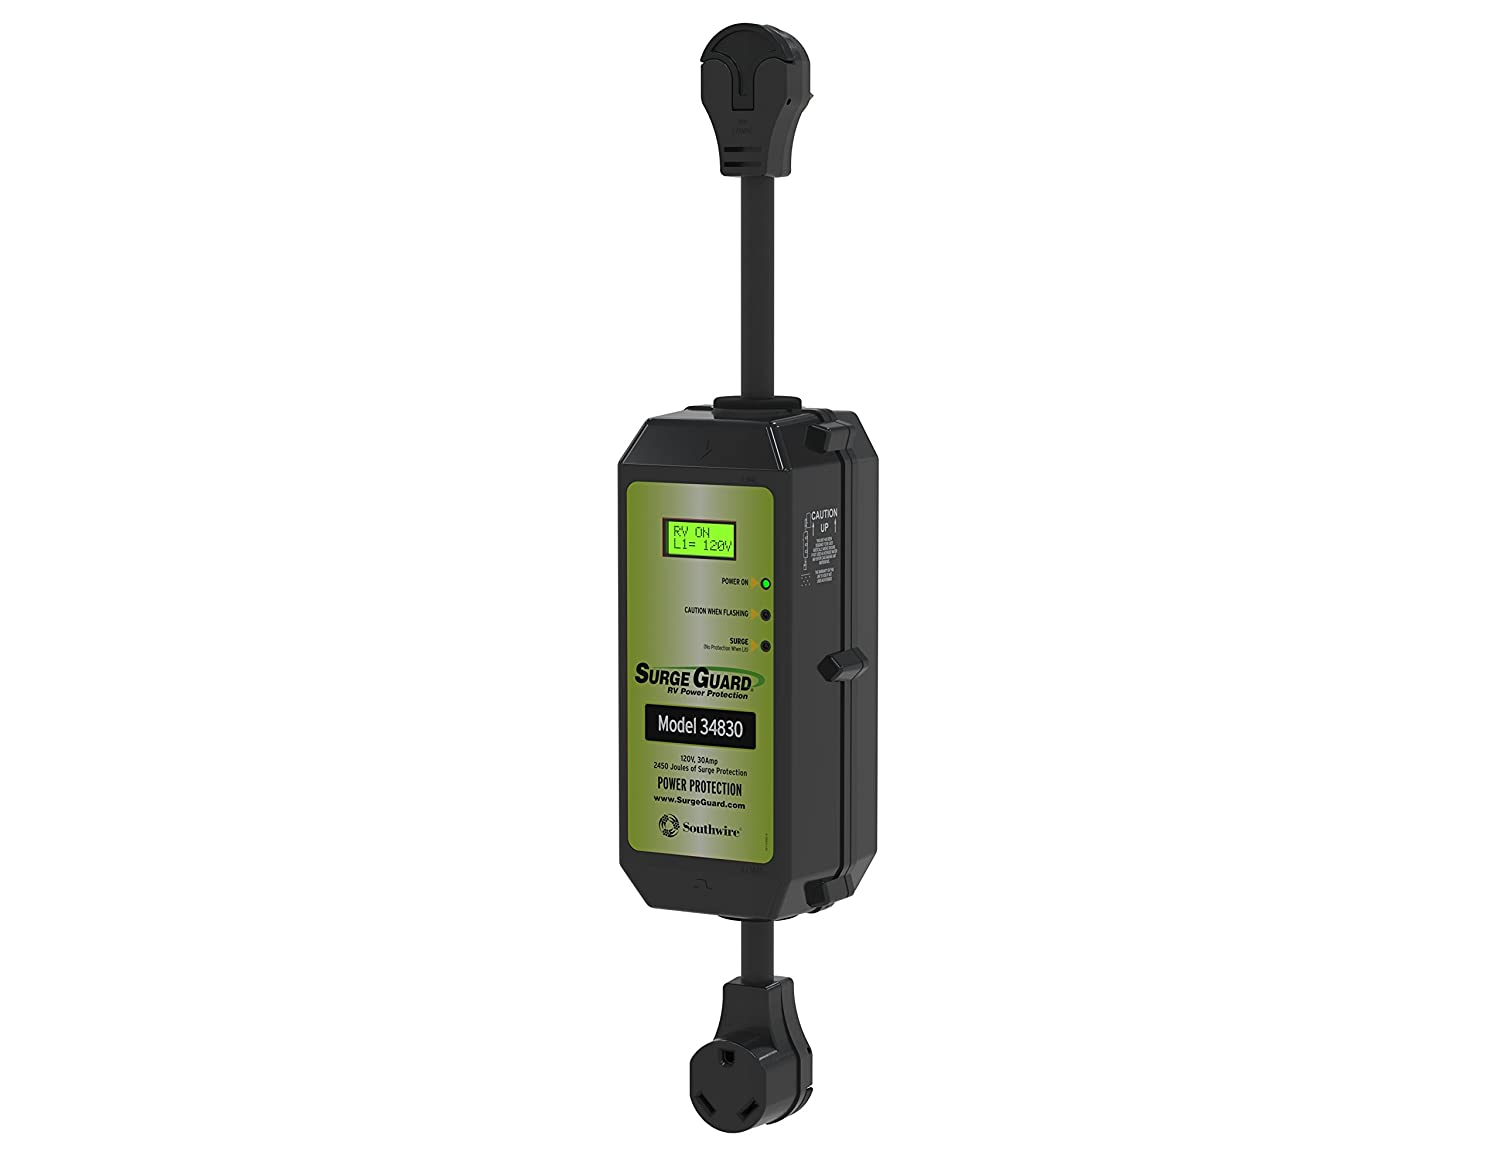 Surge Guard 34830 Portable Model with LCD Display 30 Amp